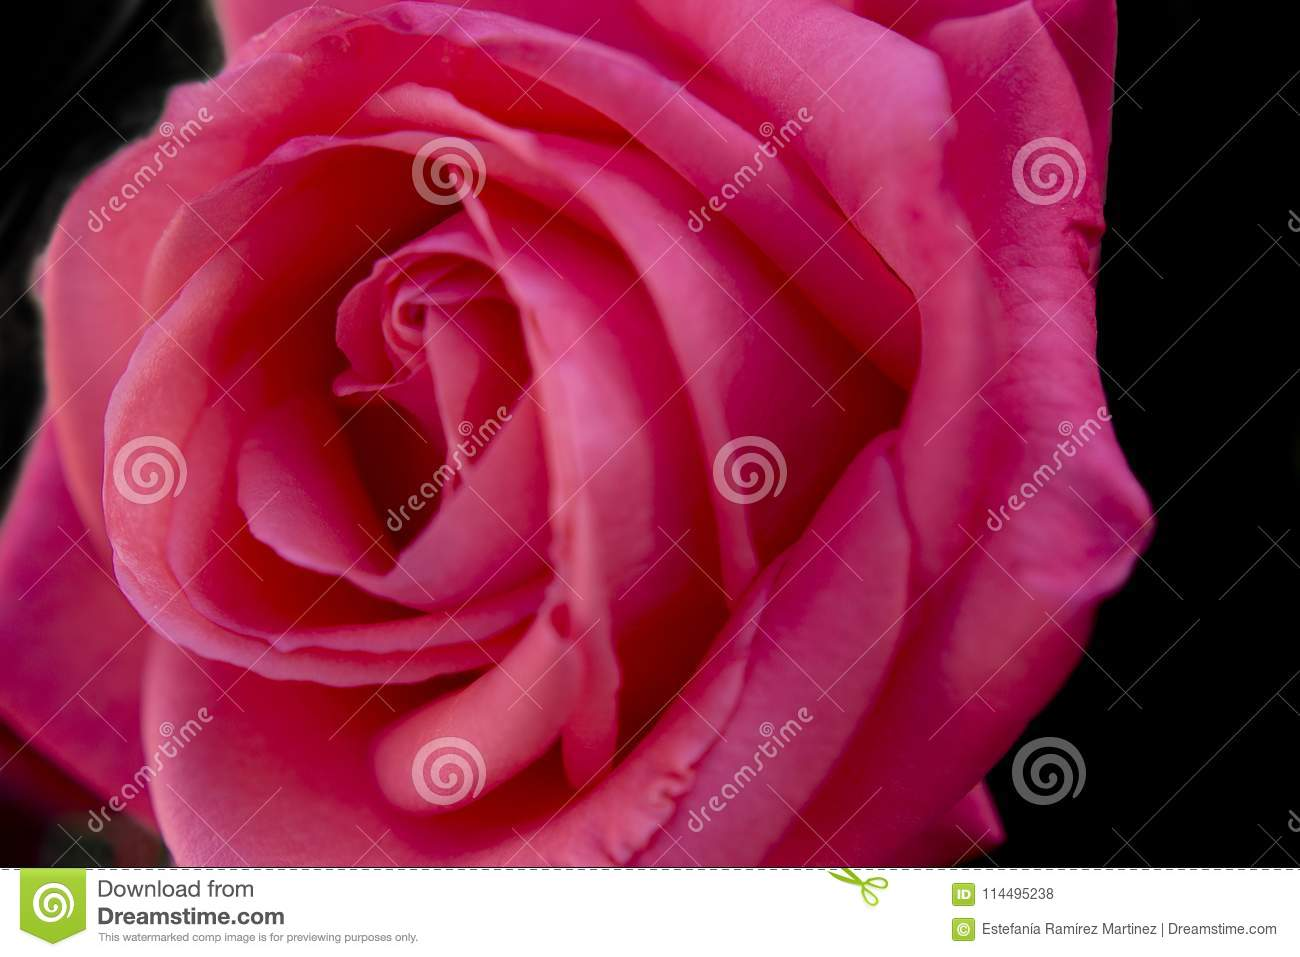 Macro pink rose flower and black background stock photo image of macro pink rose flower and black background izmirmasajfo